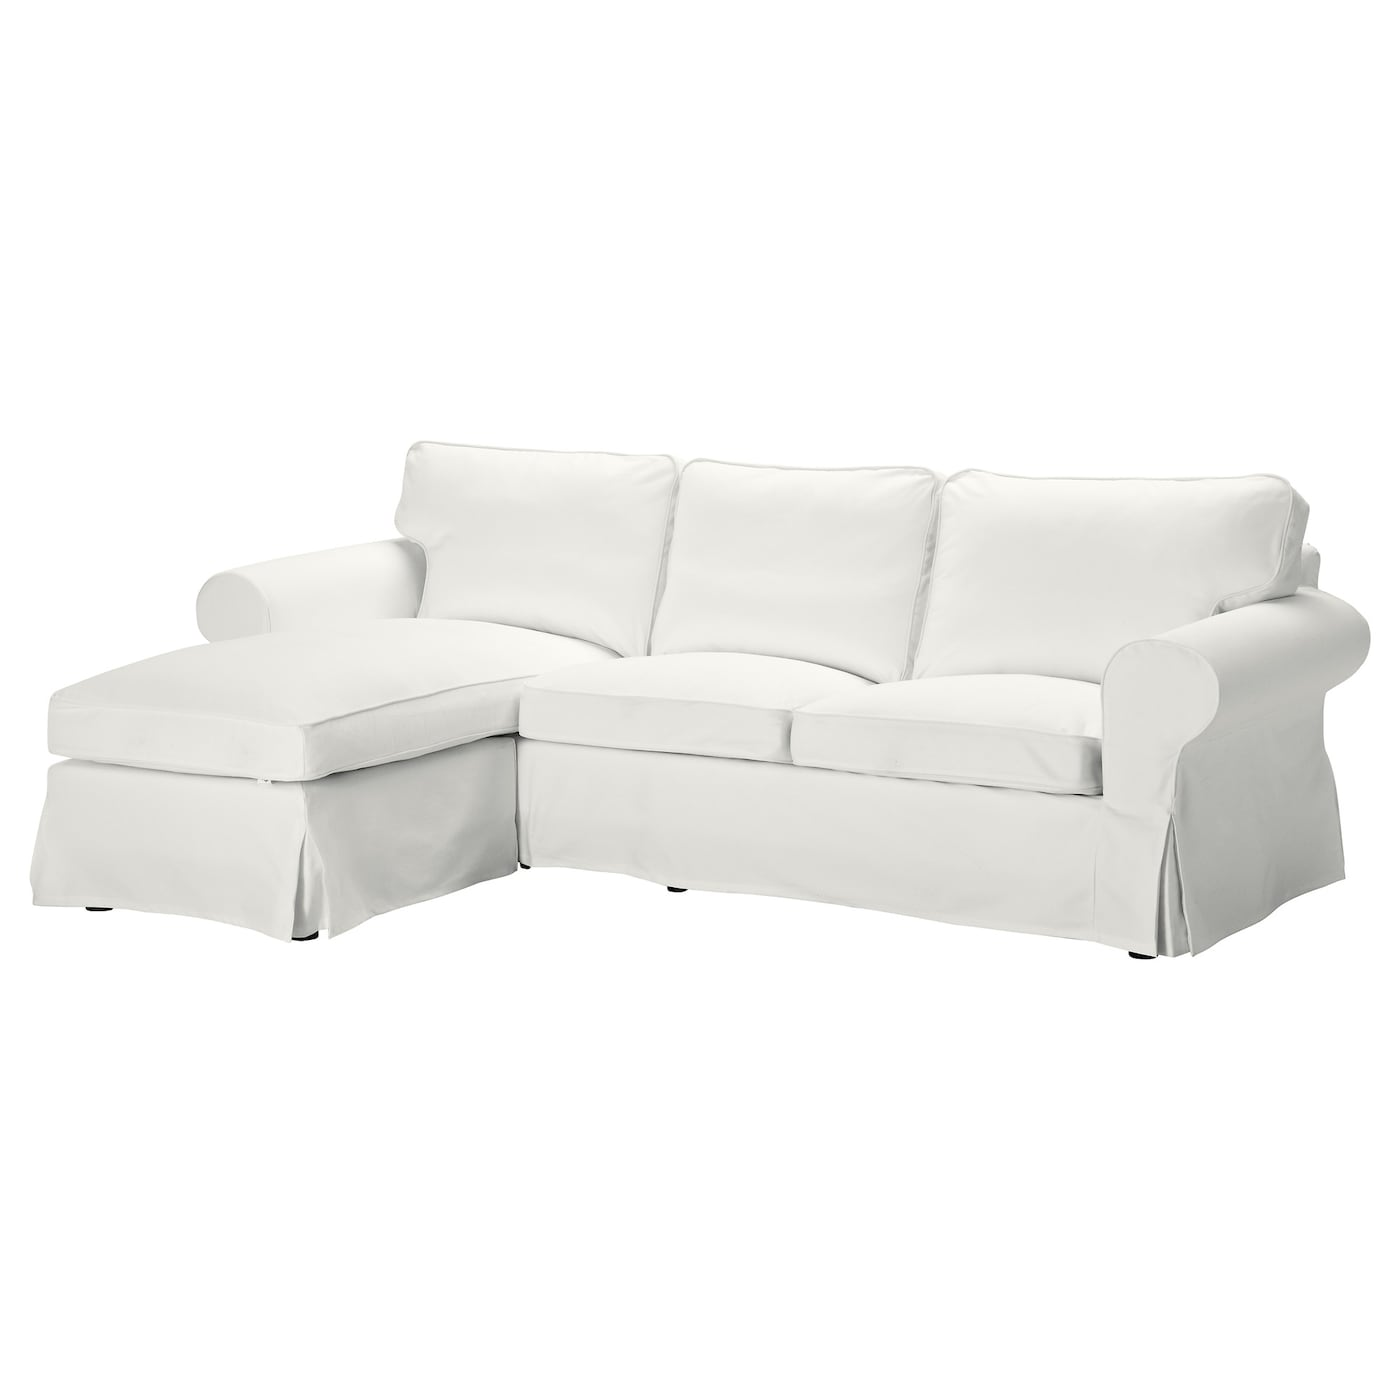 Ektorp 3 seat sofa with chaise longue blekinge white ikea - Sofa rinconera con chaise longue ...